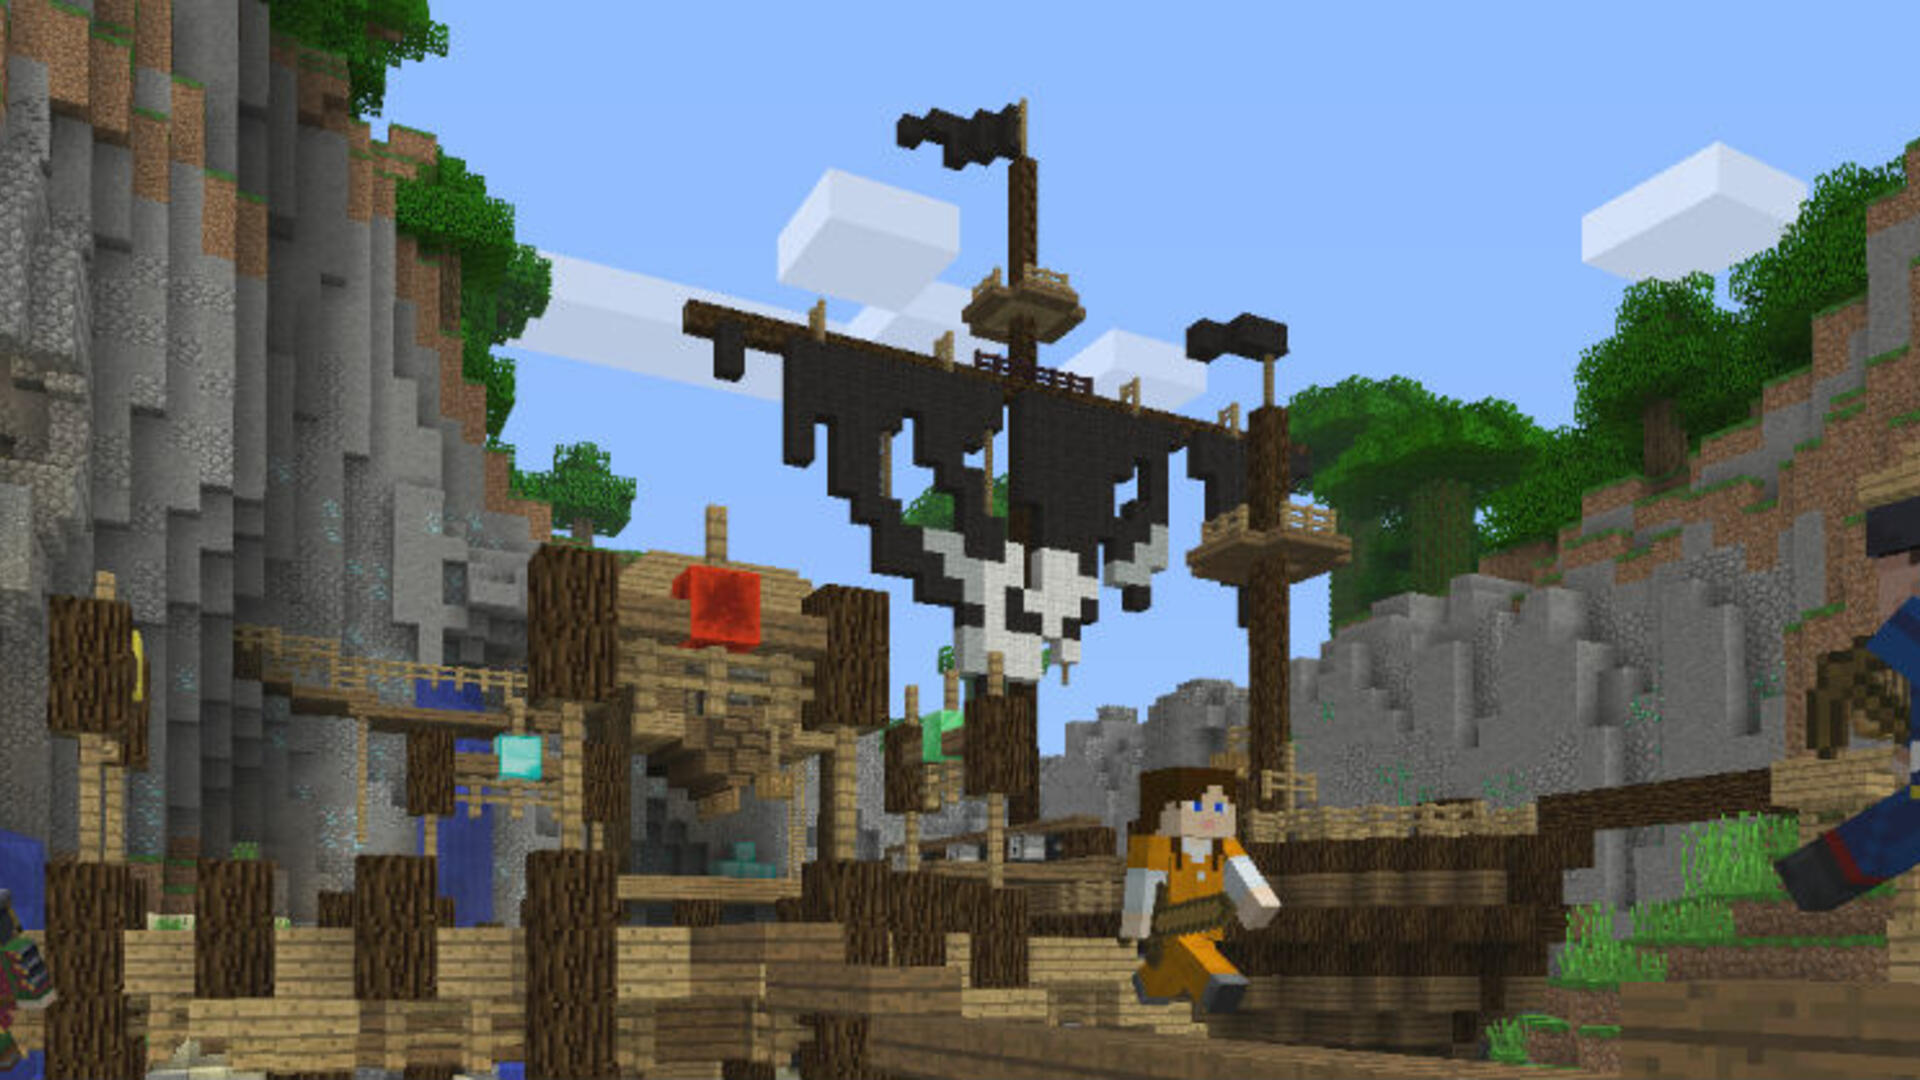 Minecraft Battle PvP Preview: Wield a Mighty Porkchop Against Your Foes